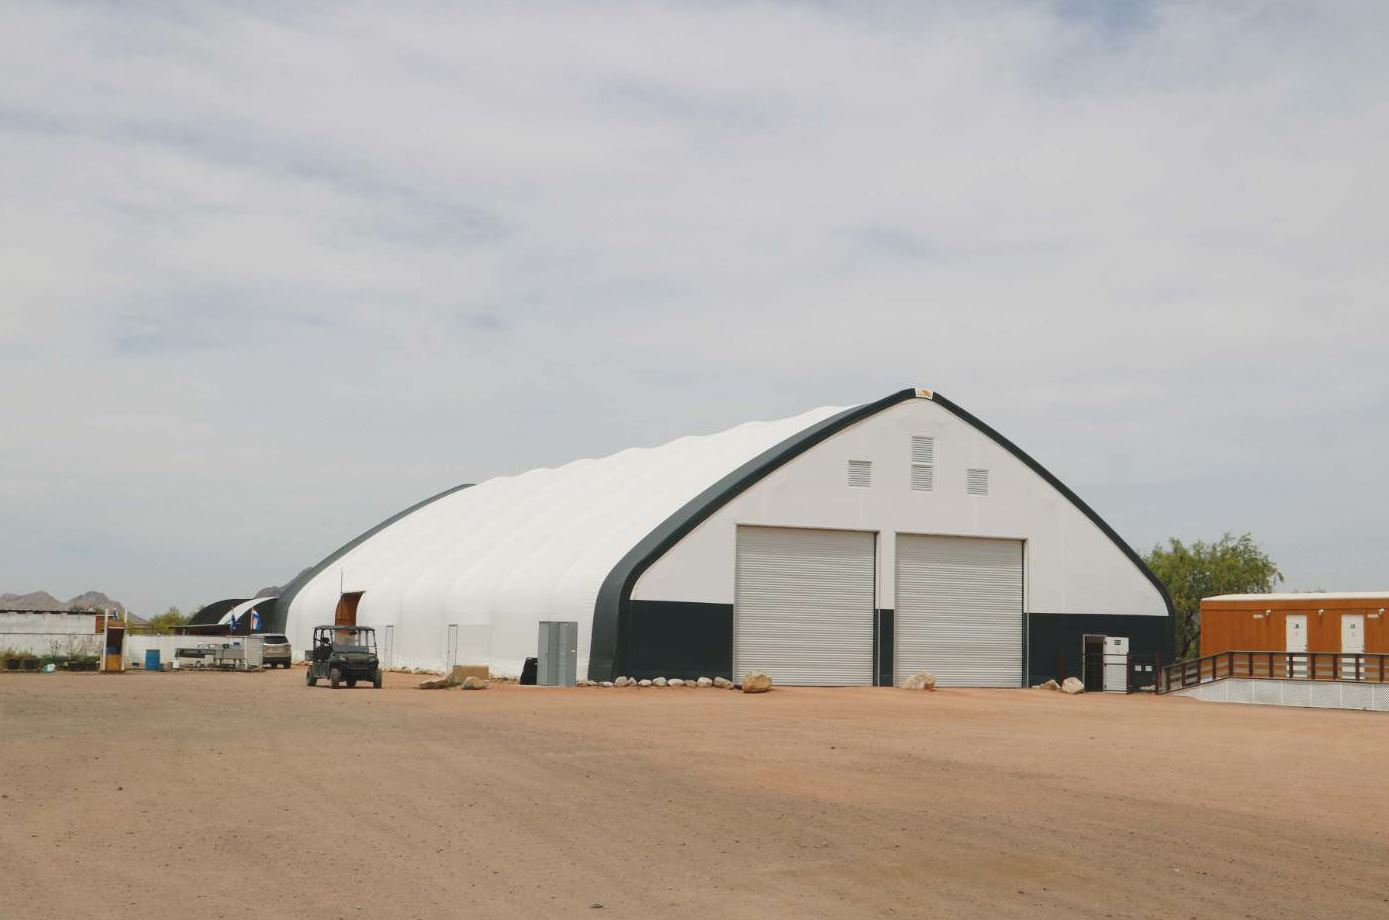 Fabric buildings, no matter their size or shape, keep air clean, fresh and, most importantly, dry. The building manufacturers offer a variety of roof designs, sizes and styles to accommodate any size or quantity of aggregate storage.